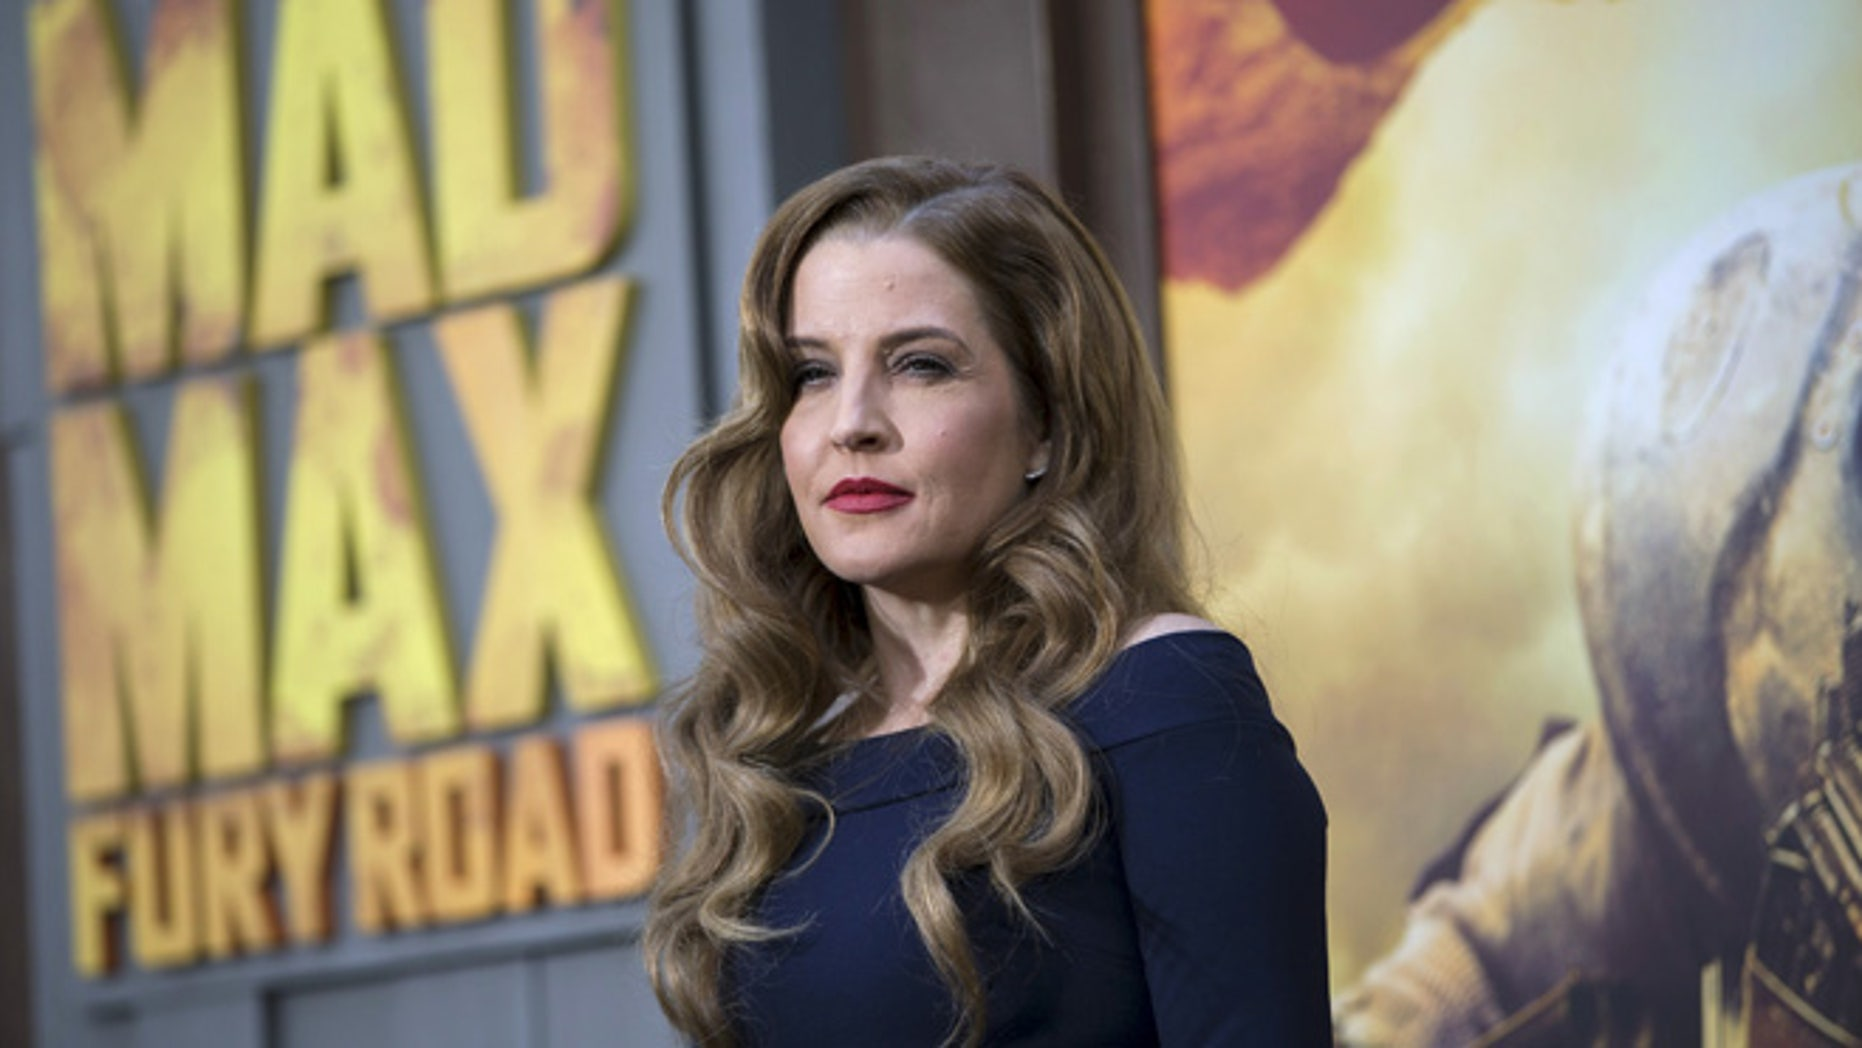 Lisa Marie Presley says her 8-year-old twins are in protective custody.